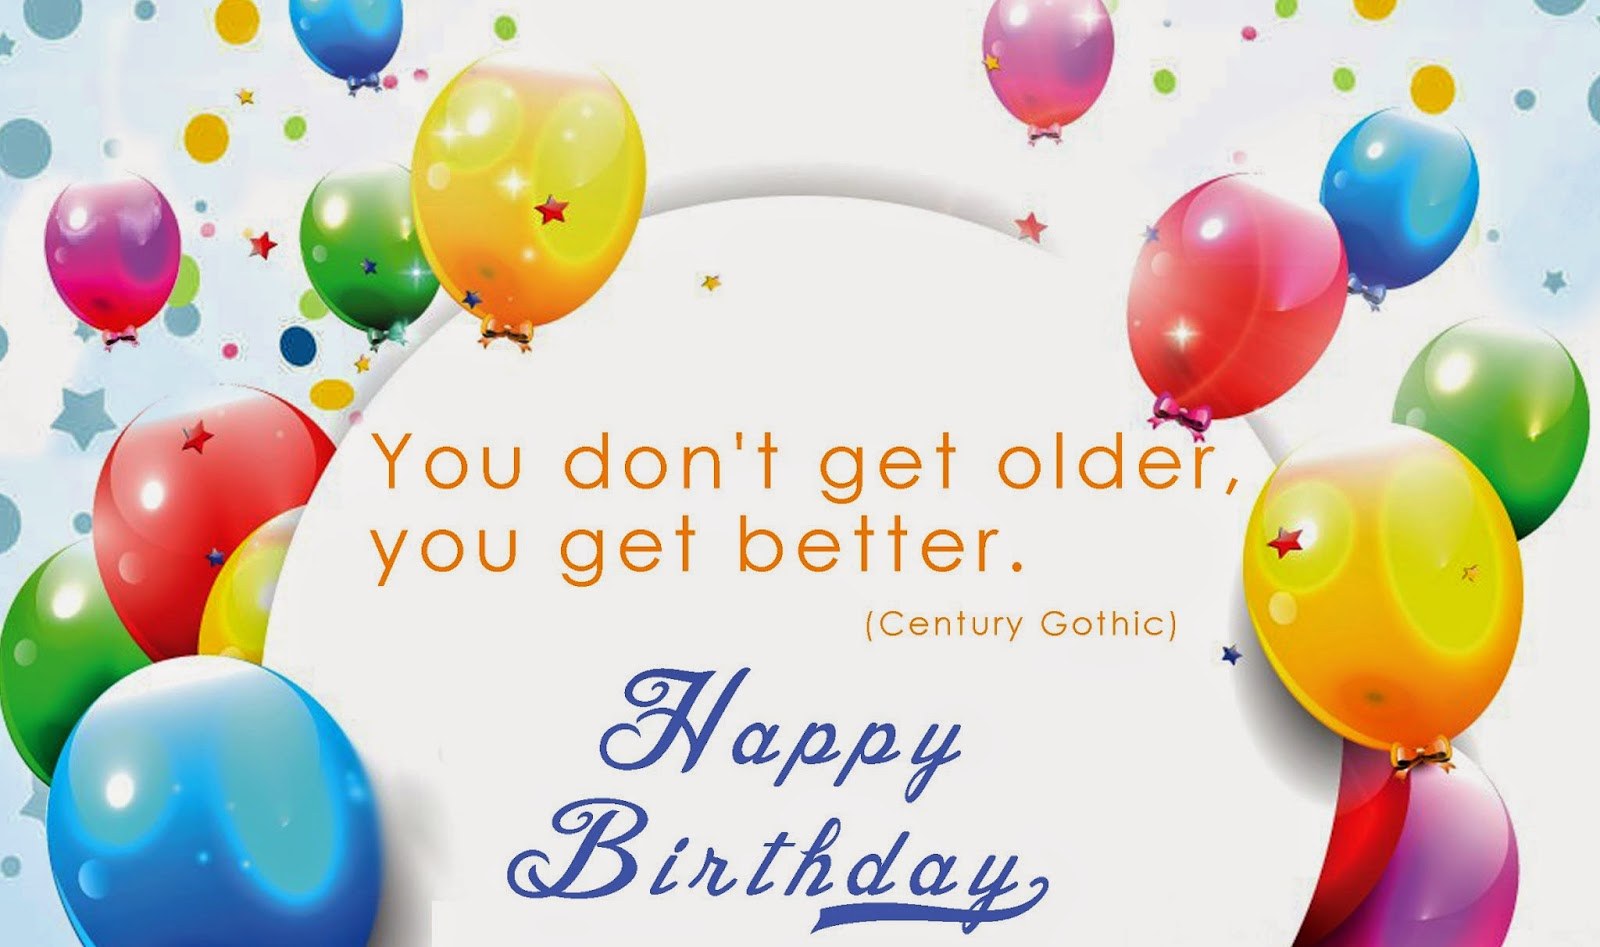 Birthday Quotes Wishes Pictures And Wallpaper Pictures Quotes